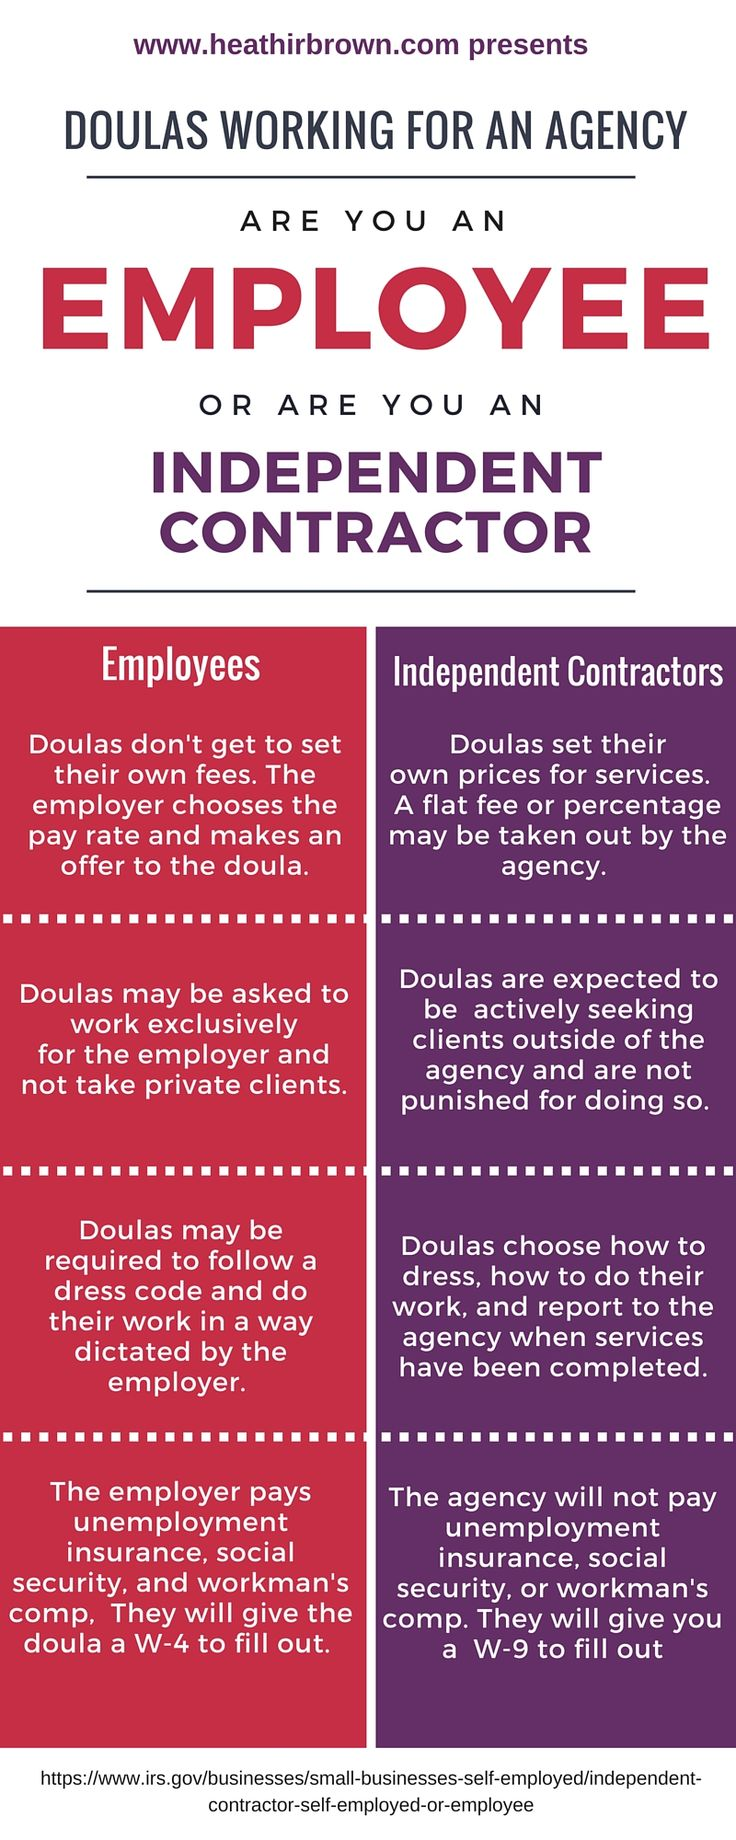 IRAC Exercise: Employee or Independent Contractor?